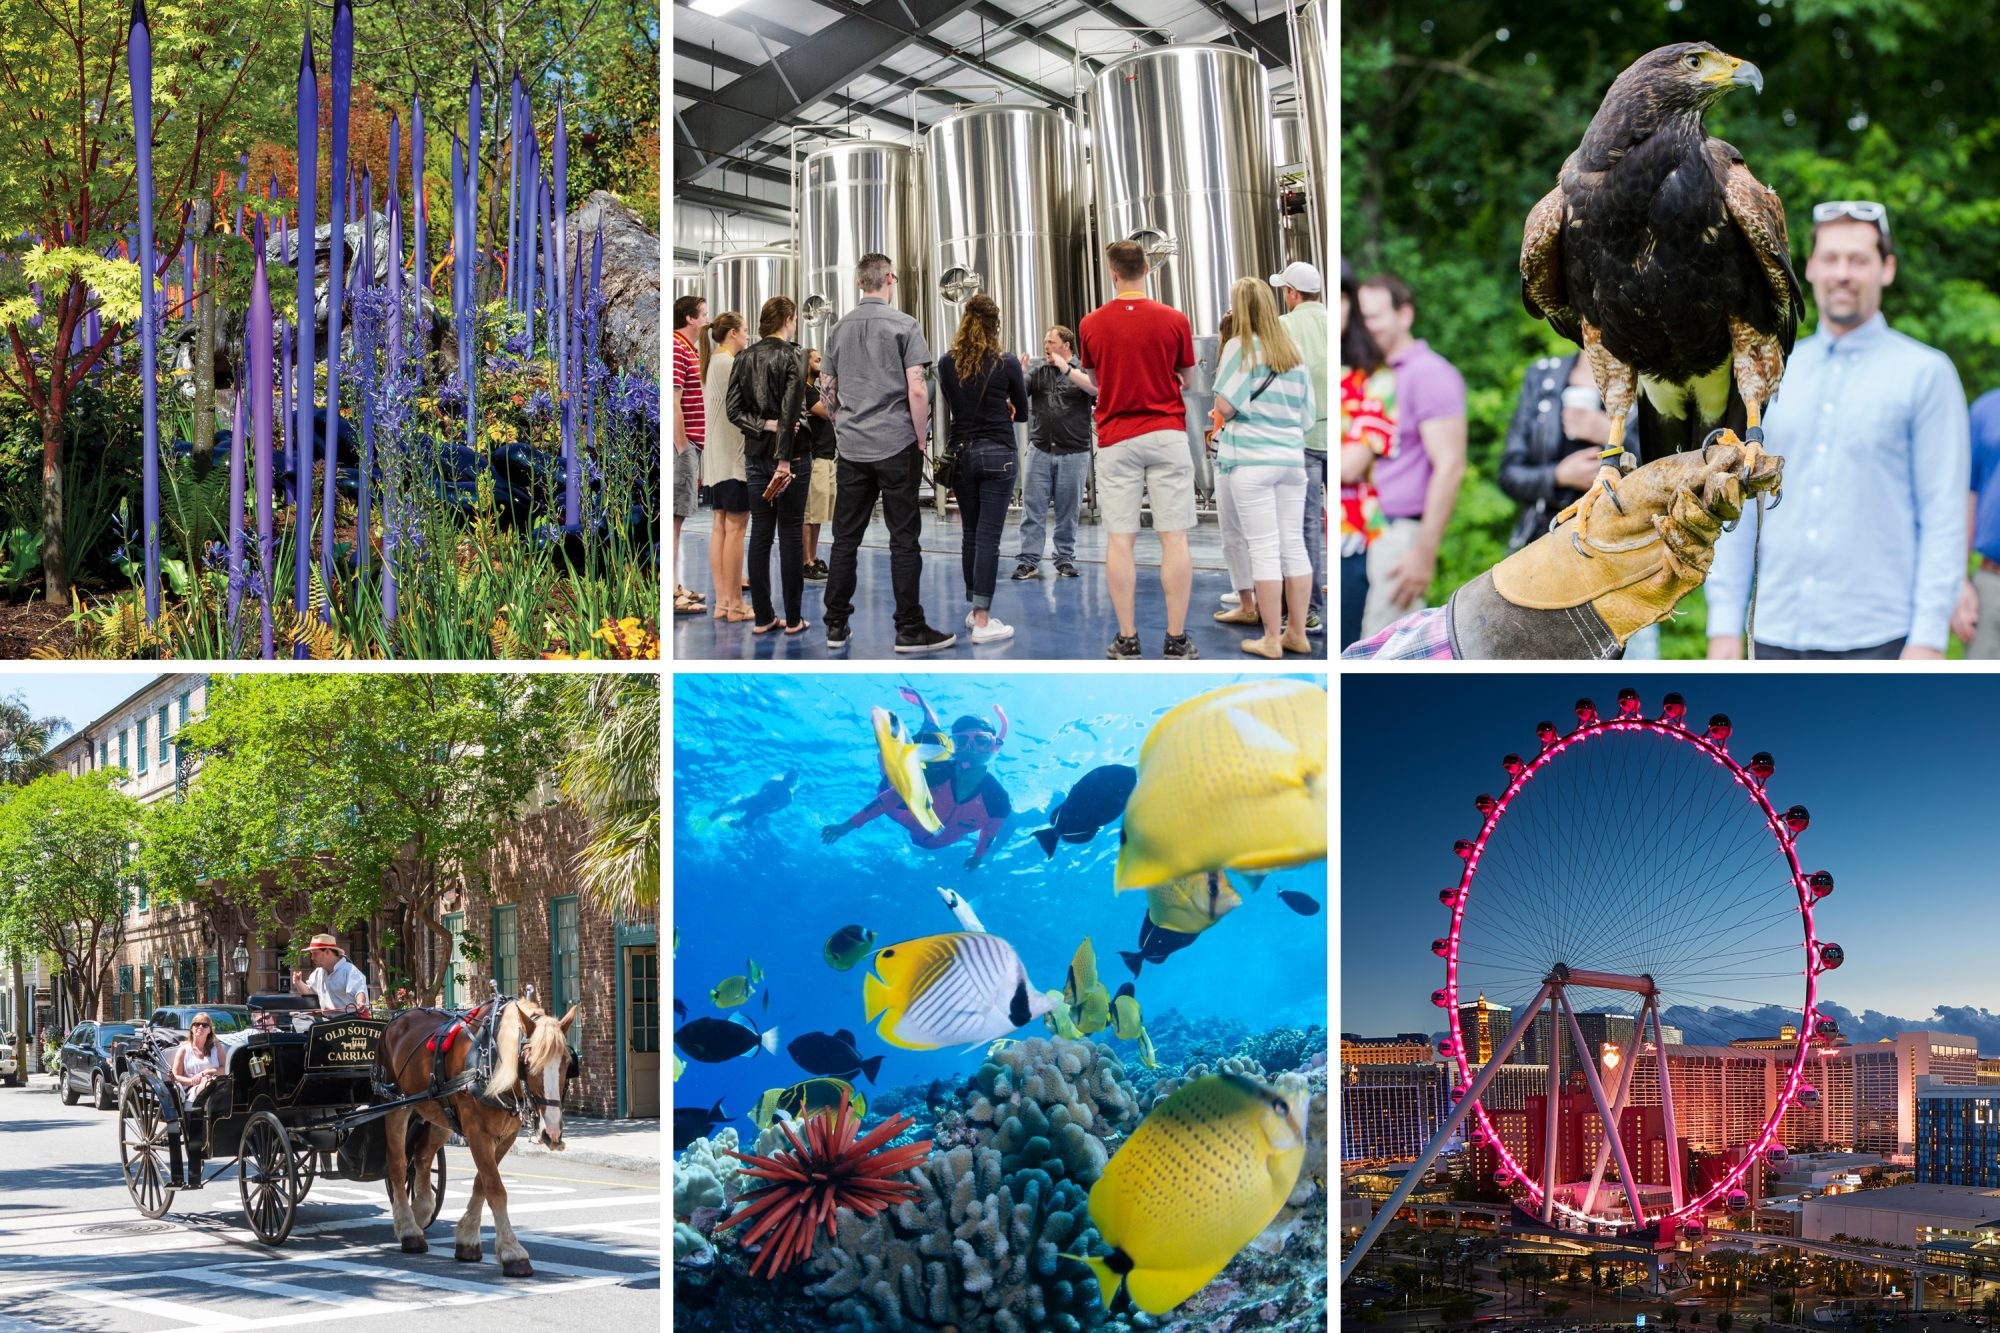 (clockwise from top left) Chihuly Garden and Glass, Seattle, Washington; City Brew Tour, Burlington, Vermont; Falconry beginner's lesson, The Greenbreier, White Sulphur Springs, West Virginia; The High Roller at The LINQ, Las Vegas, Nevada;...